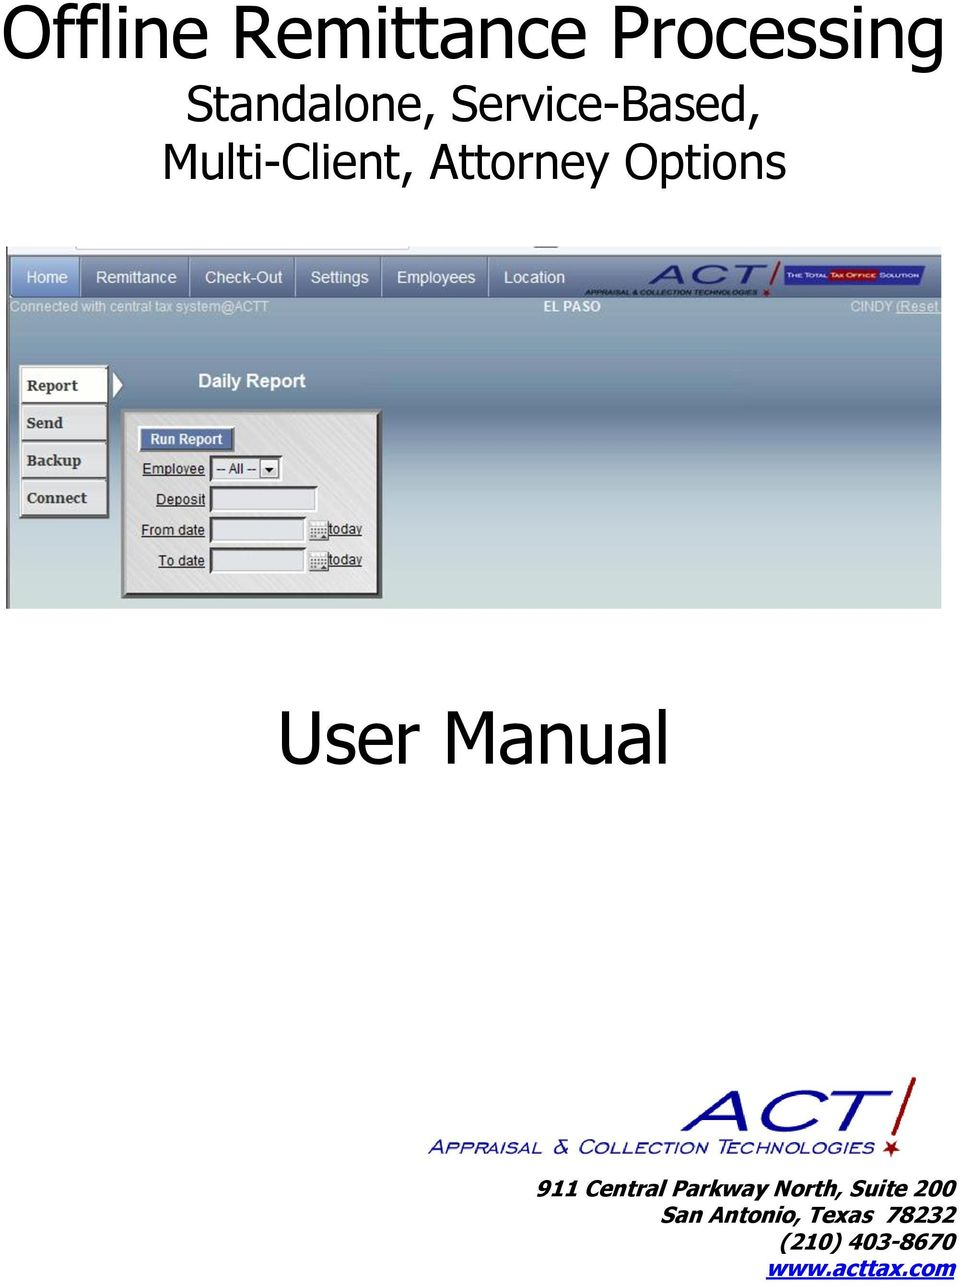 User Manual 911 Central Parkway North, Suite